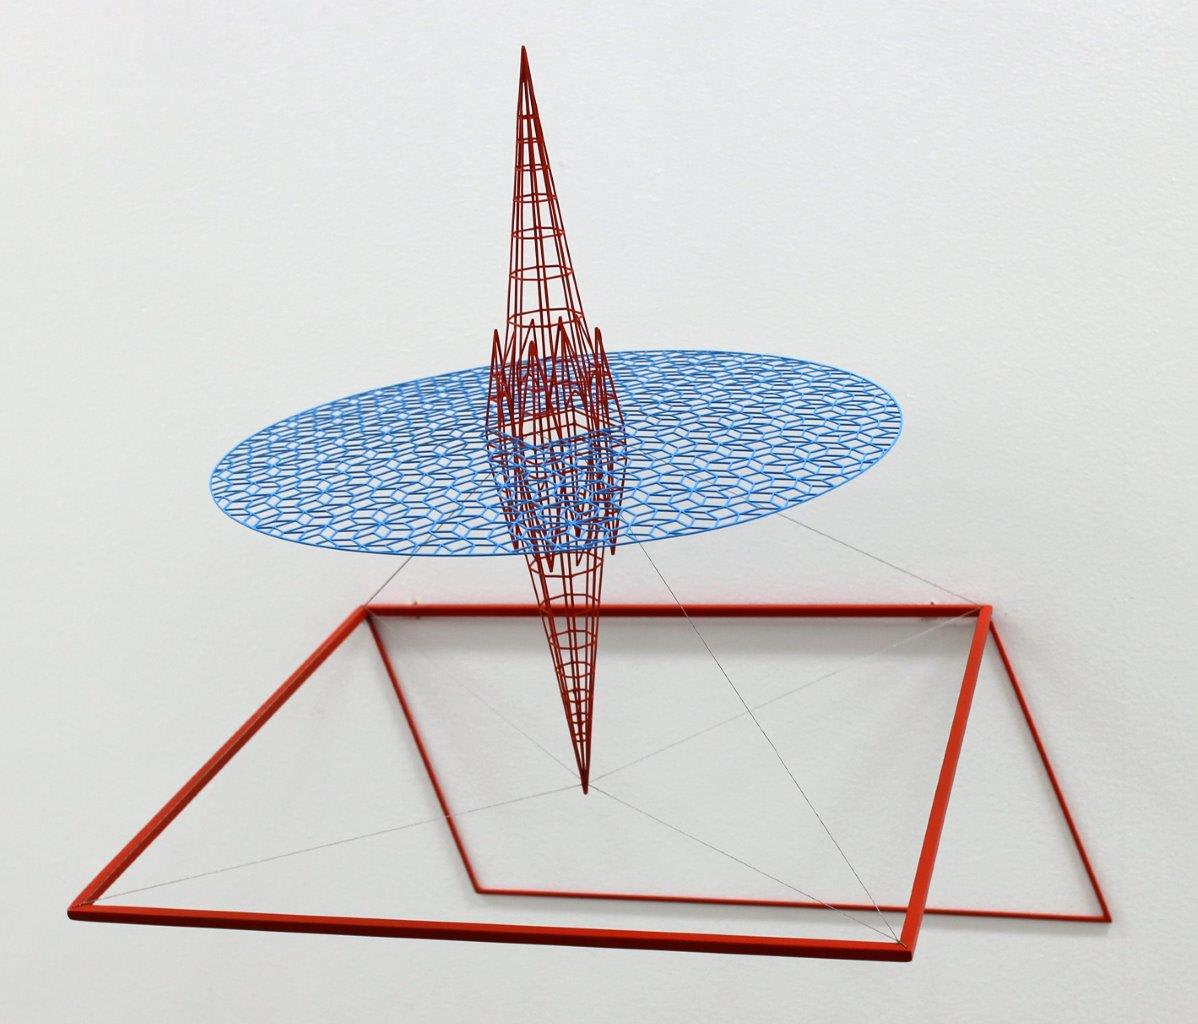 Neil Dawson  Inspiration 1, 2013  Painted steel and stainless steel wire  18.5 x 18.9 x 15 in 47 x 48 x 38 cm